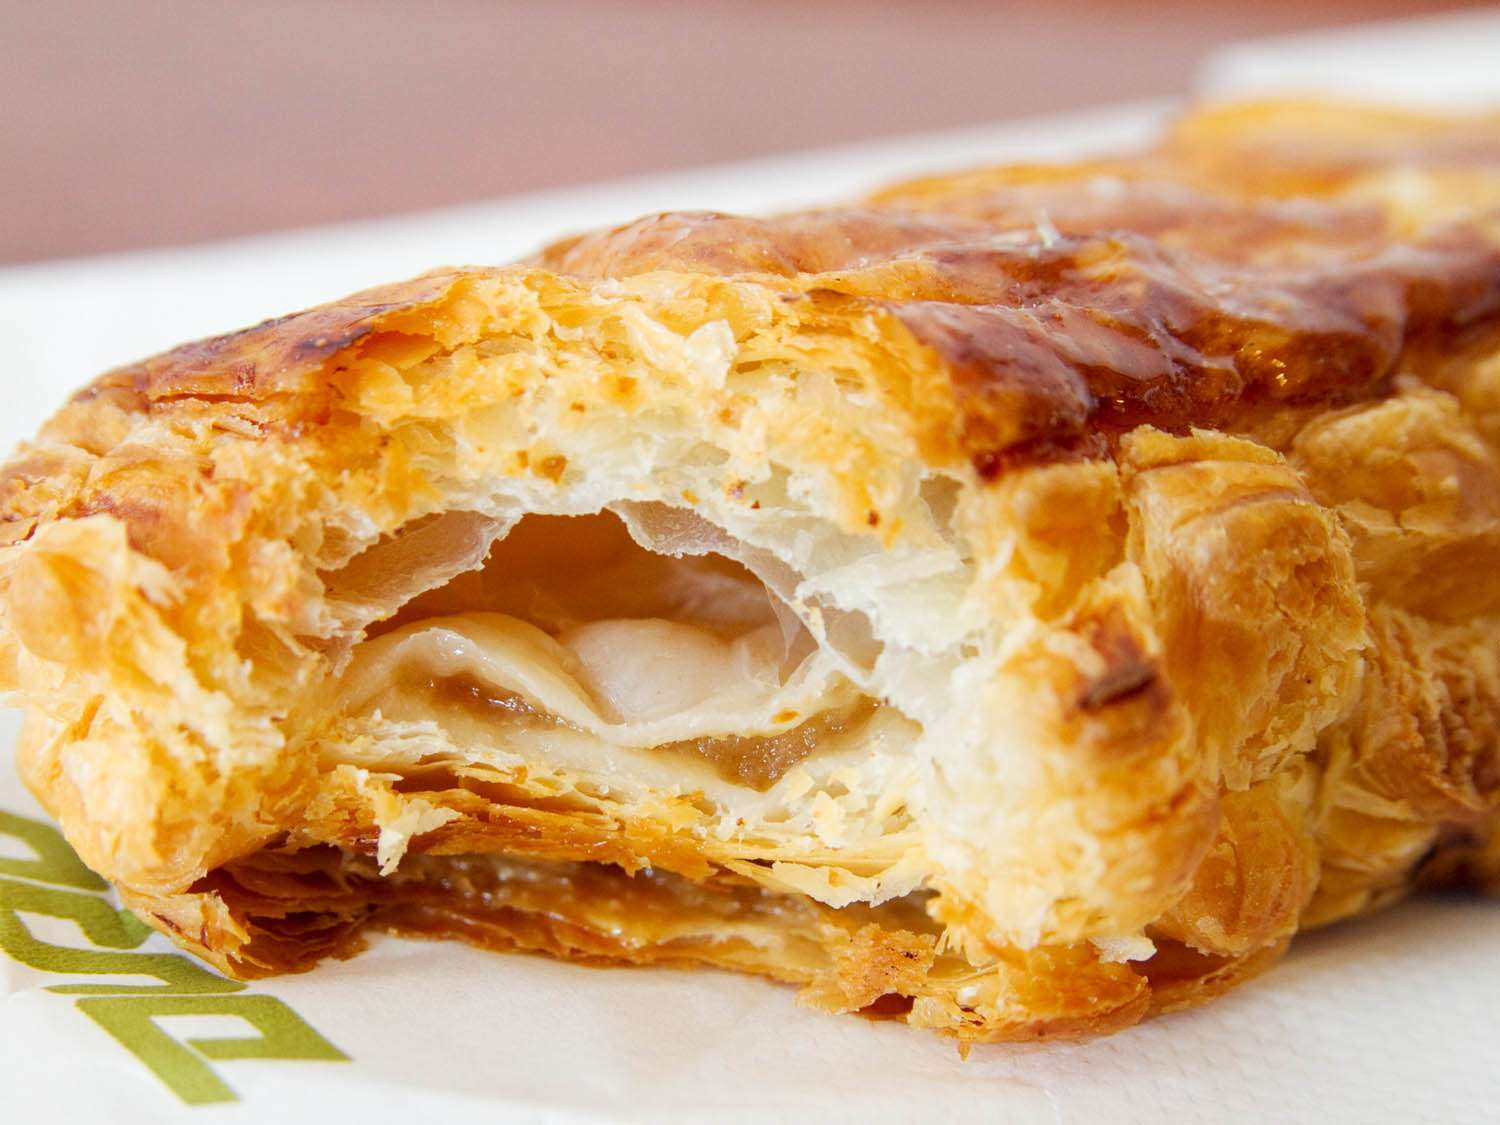 20140708-french-pastry-apple-turnover-cannelle-patisserie-robyn-lee-1.jpg